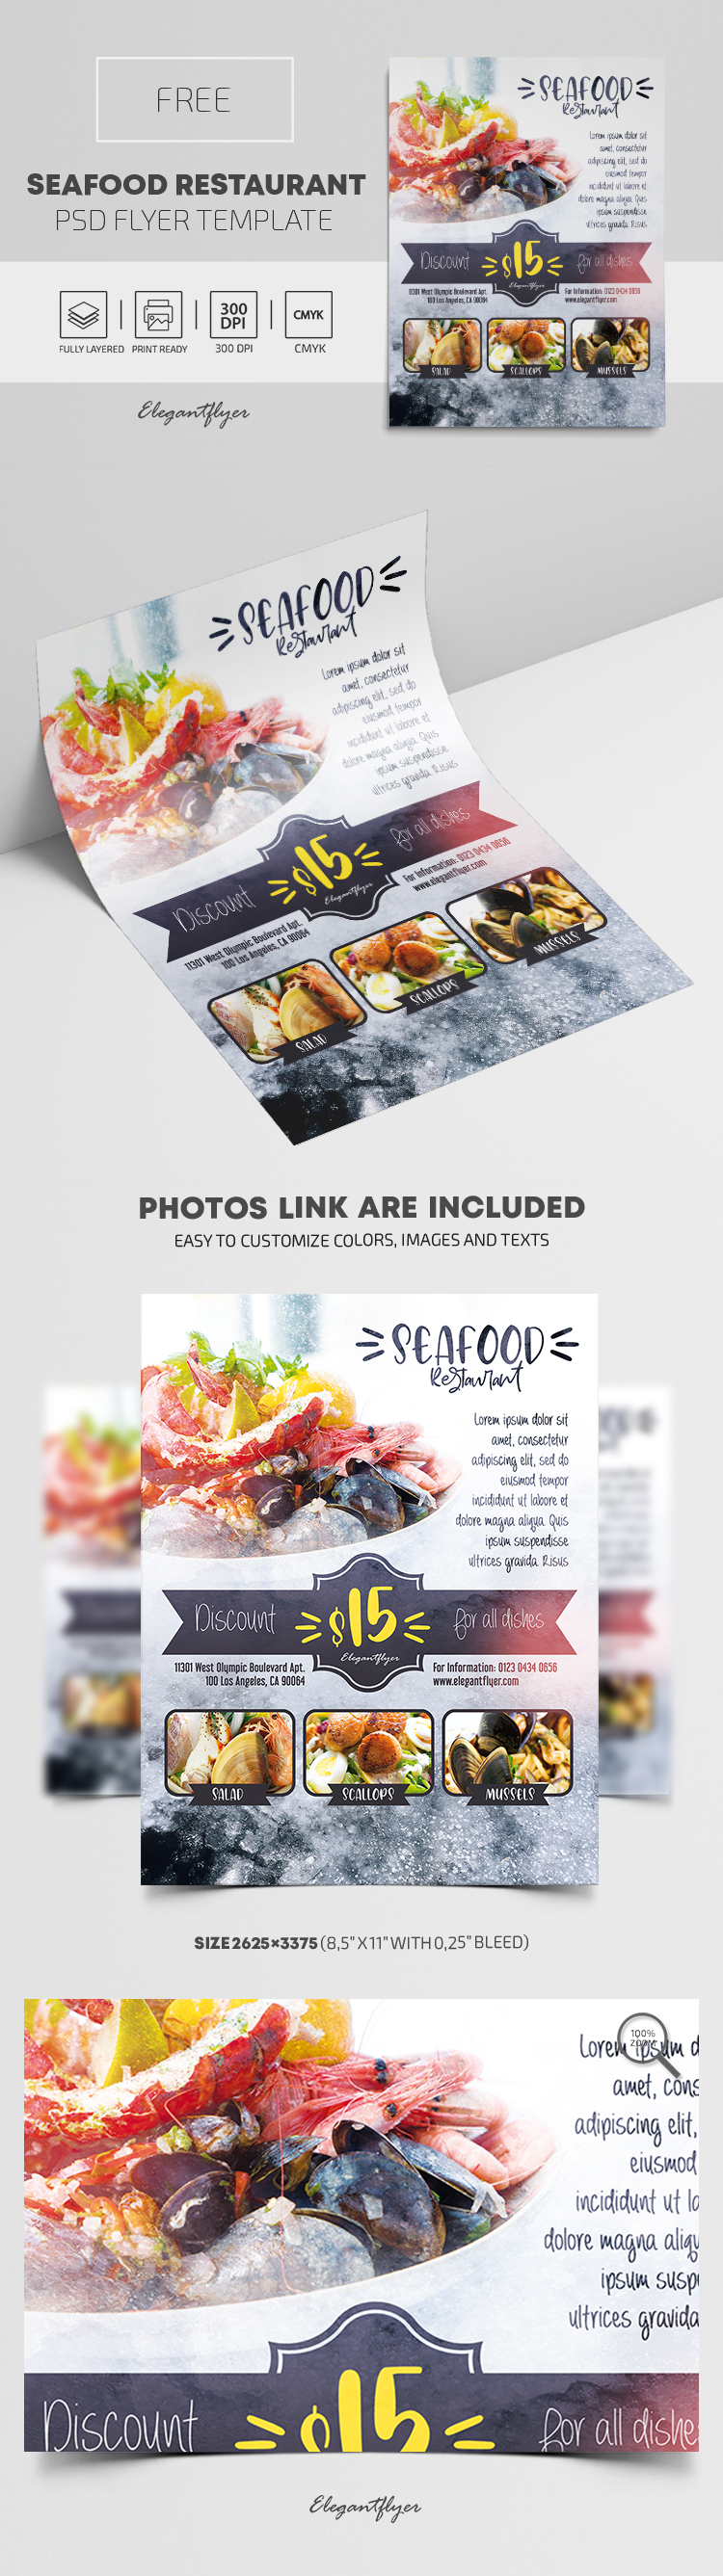 Seafood Restaurant – Free PSD Flyer Template